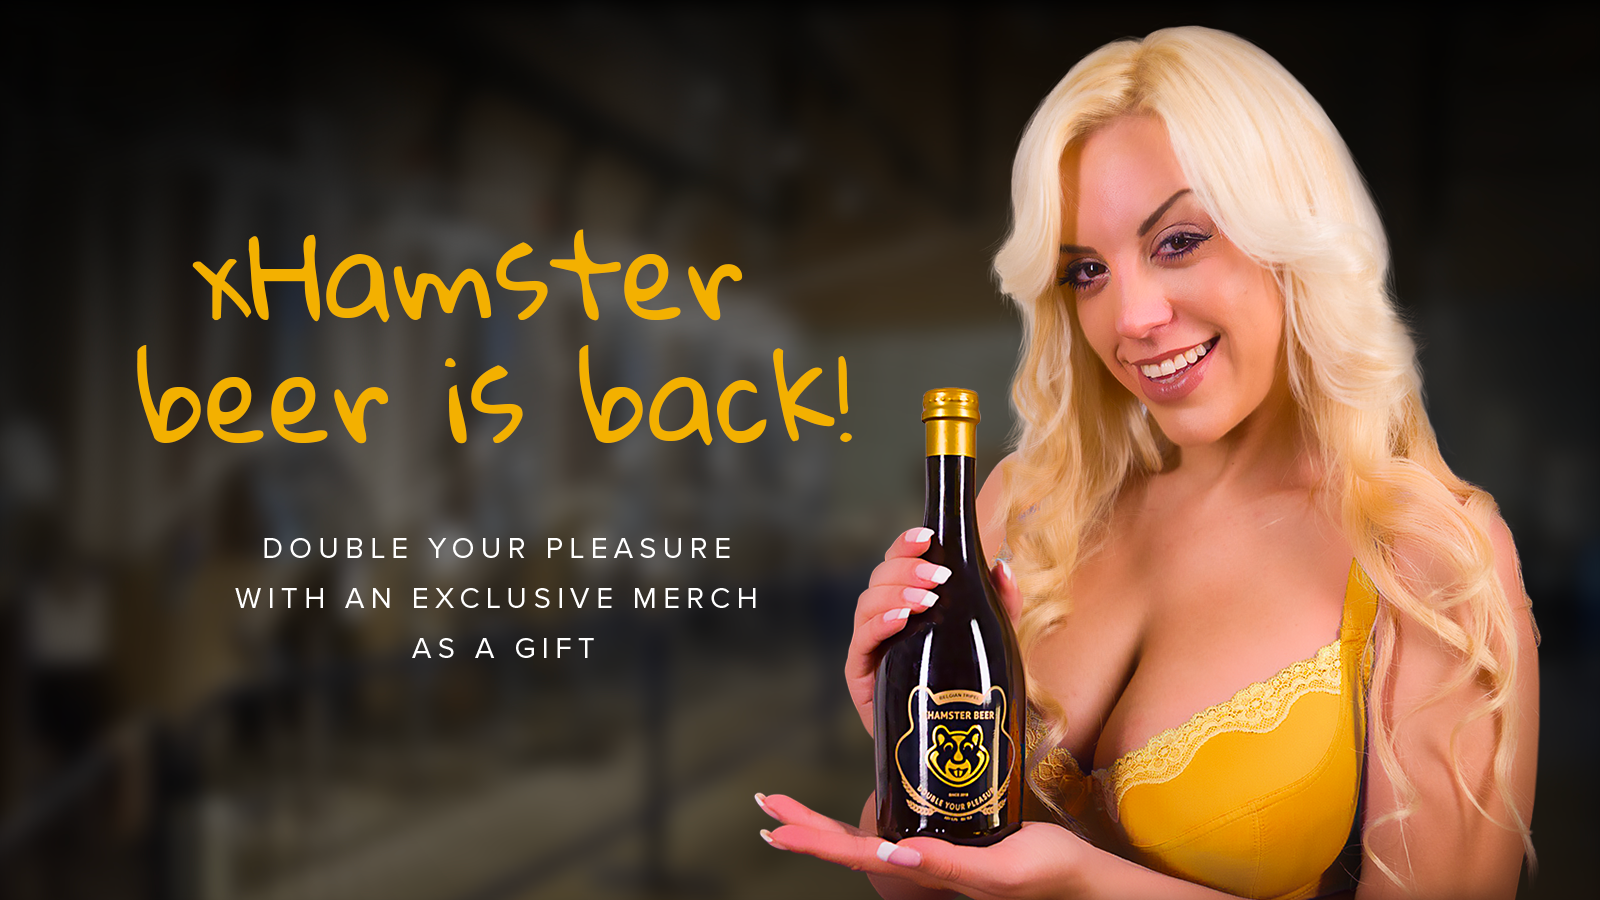 xhamster beer is back!